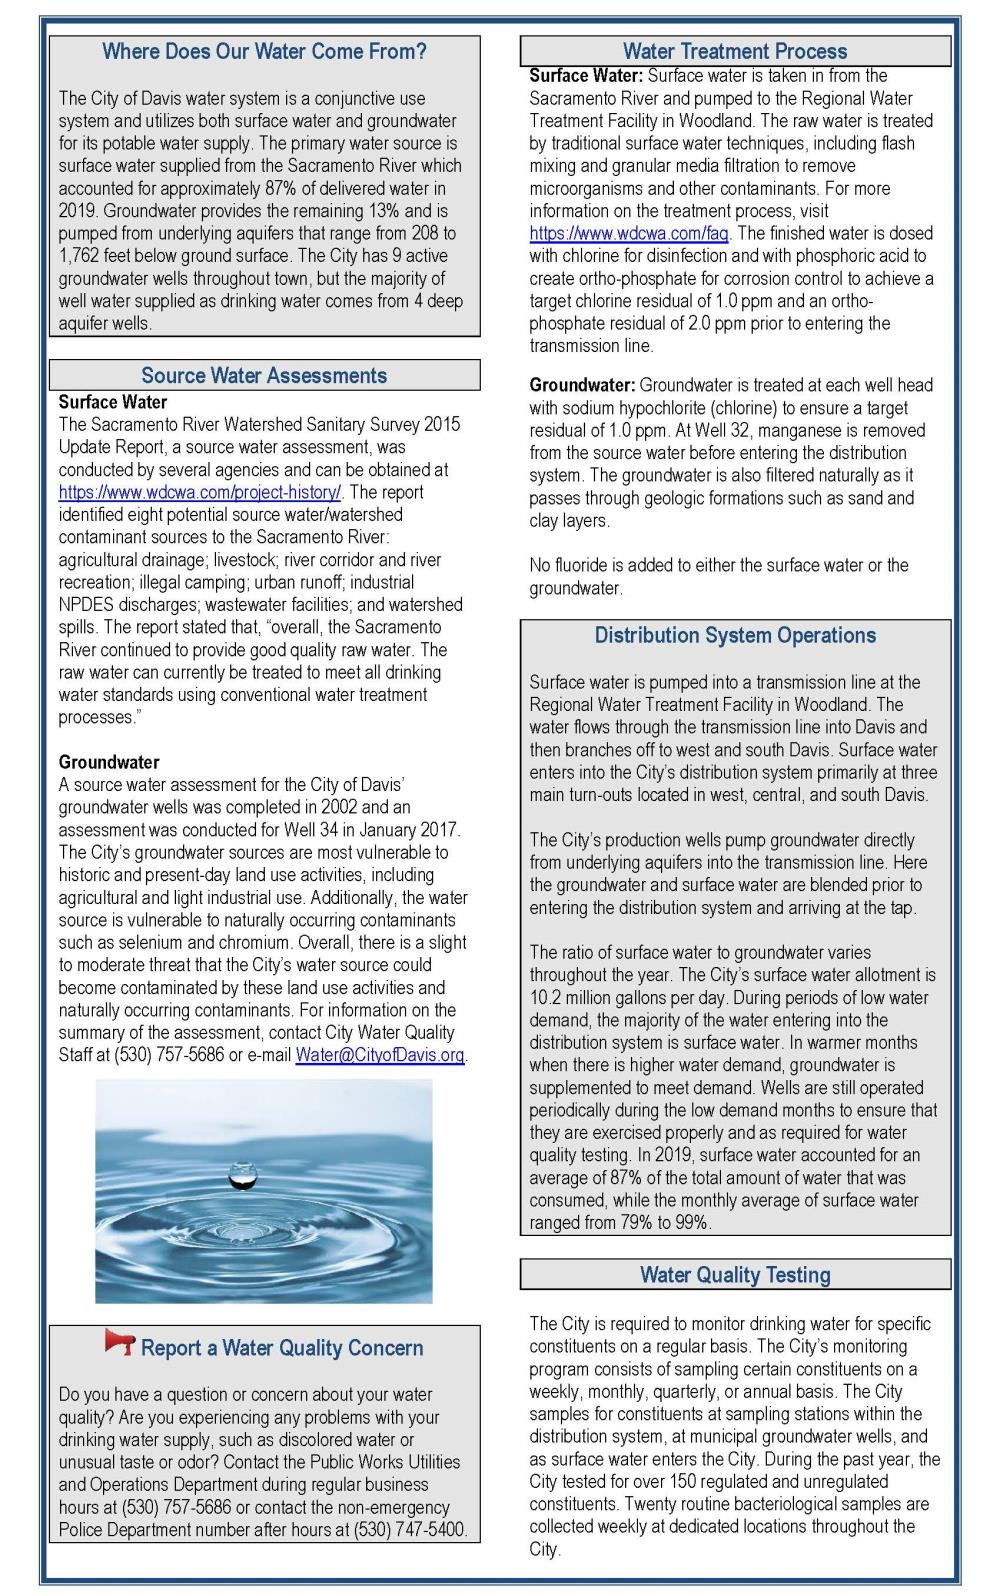 2019 Water Quality Report_Page_2